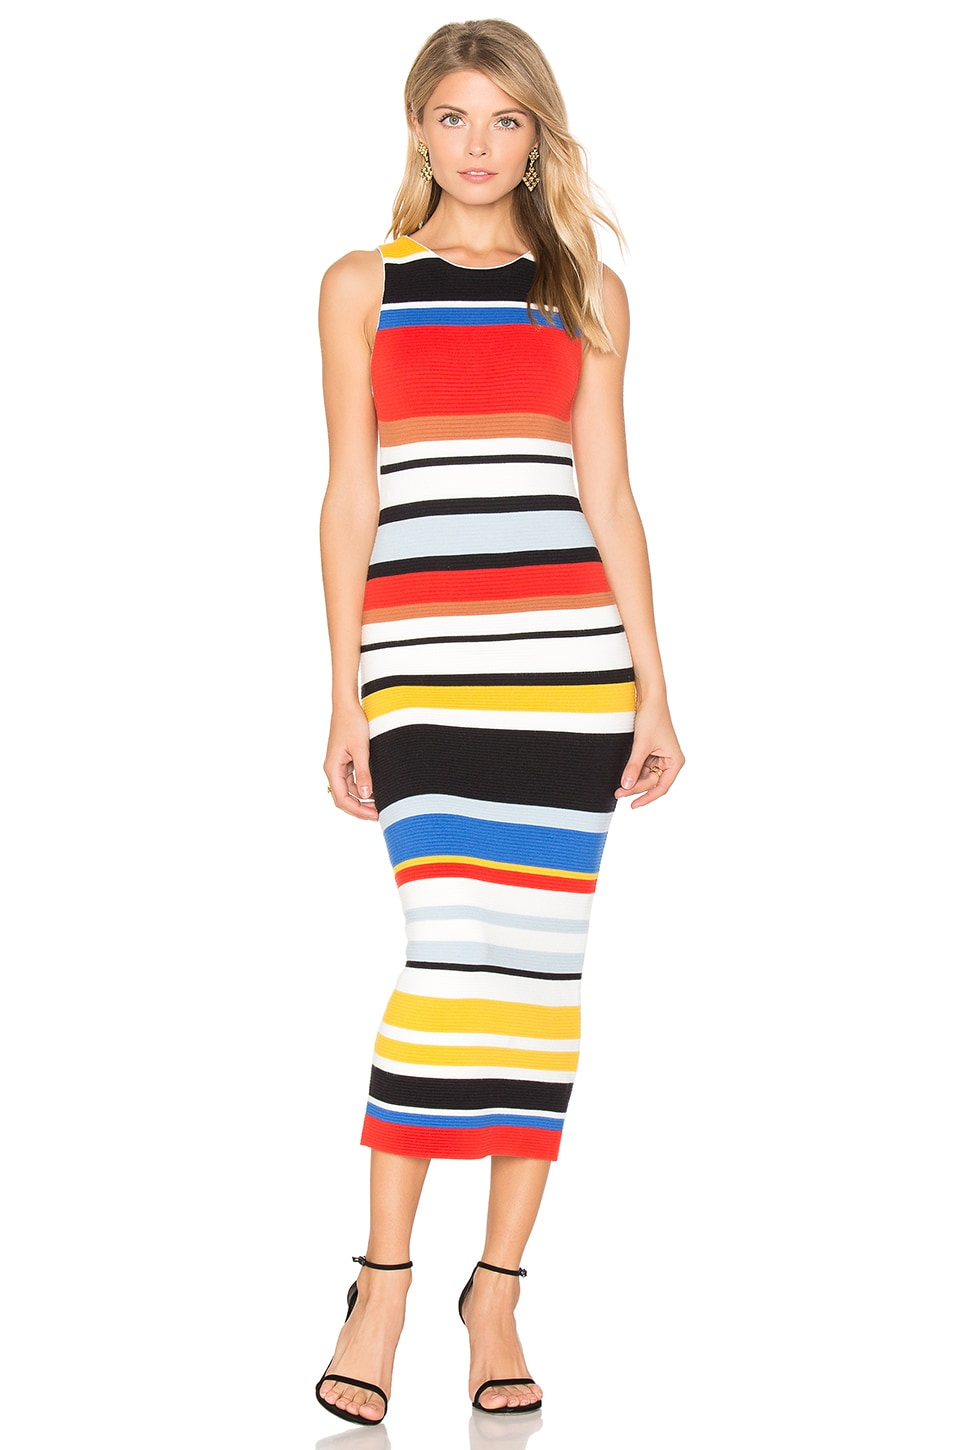 buy Jenner Ribbed Midi Dress by Alice + Olivia dresses online shopping